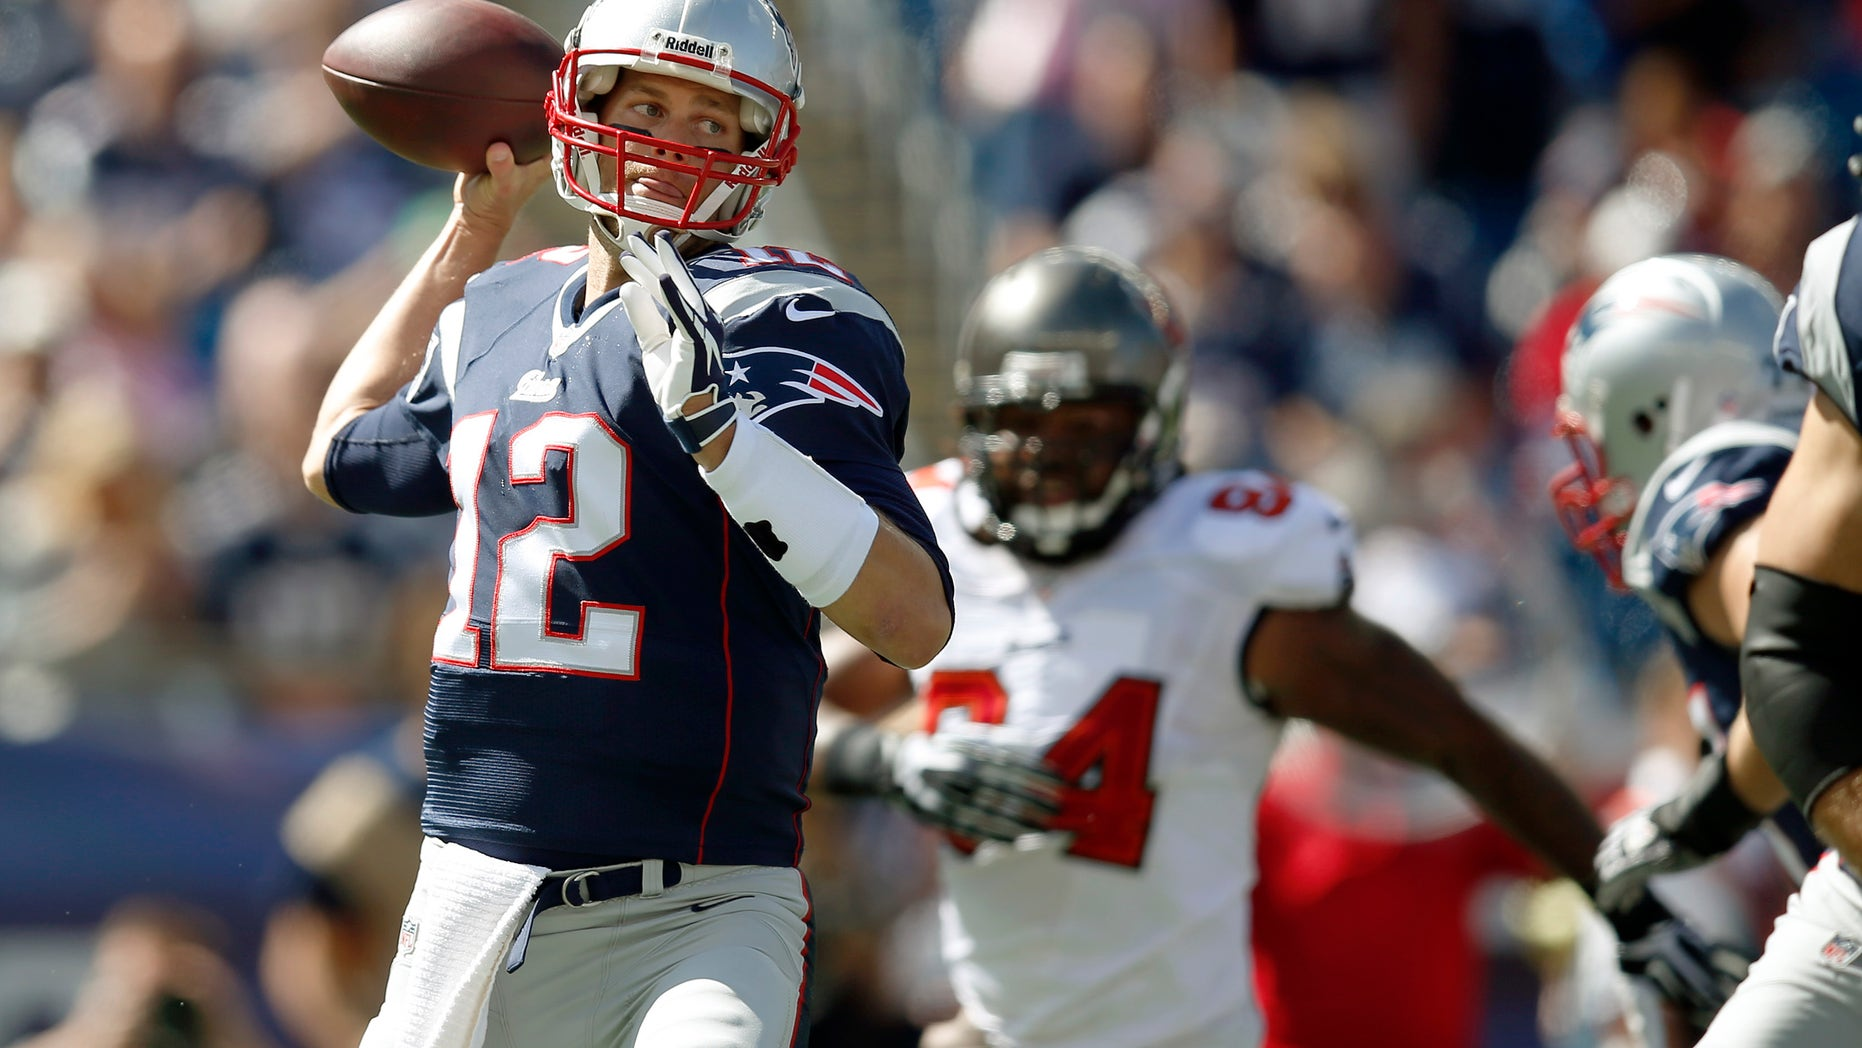 New England Patriots quarterback Tom Brady (12) passes while pursued by Tampa Bay Buccaneers defensive end Adrian Clayborn (94) in the first half of an NFL football game Sunday, Sept. 22, 2013, in Foxborough, Mass. (AP Photo/Elise Amendola)